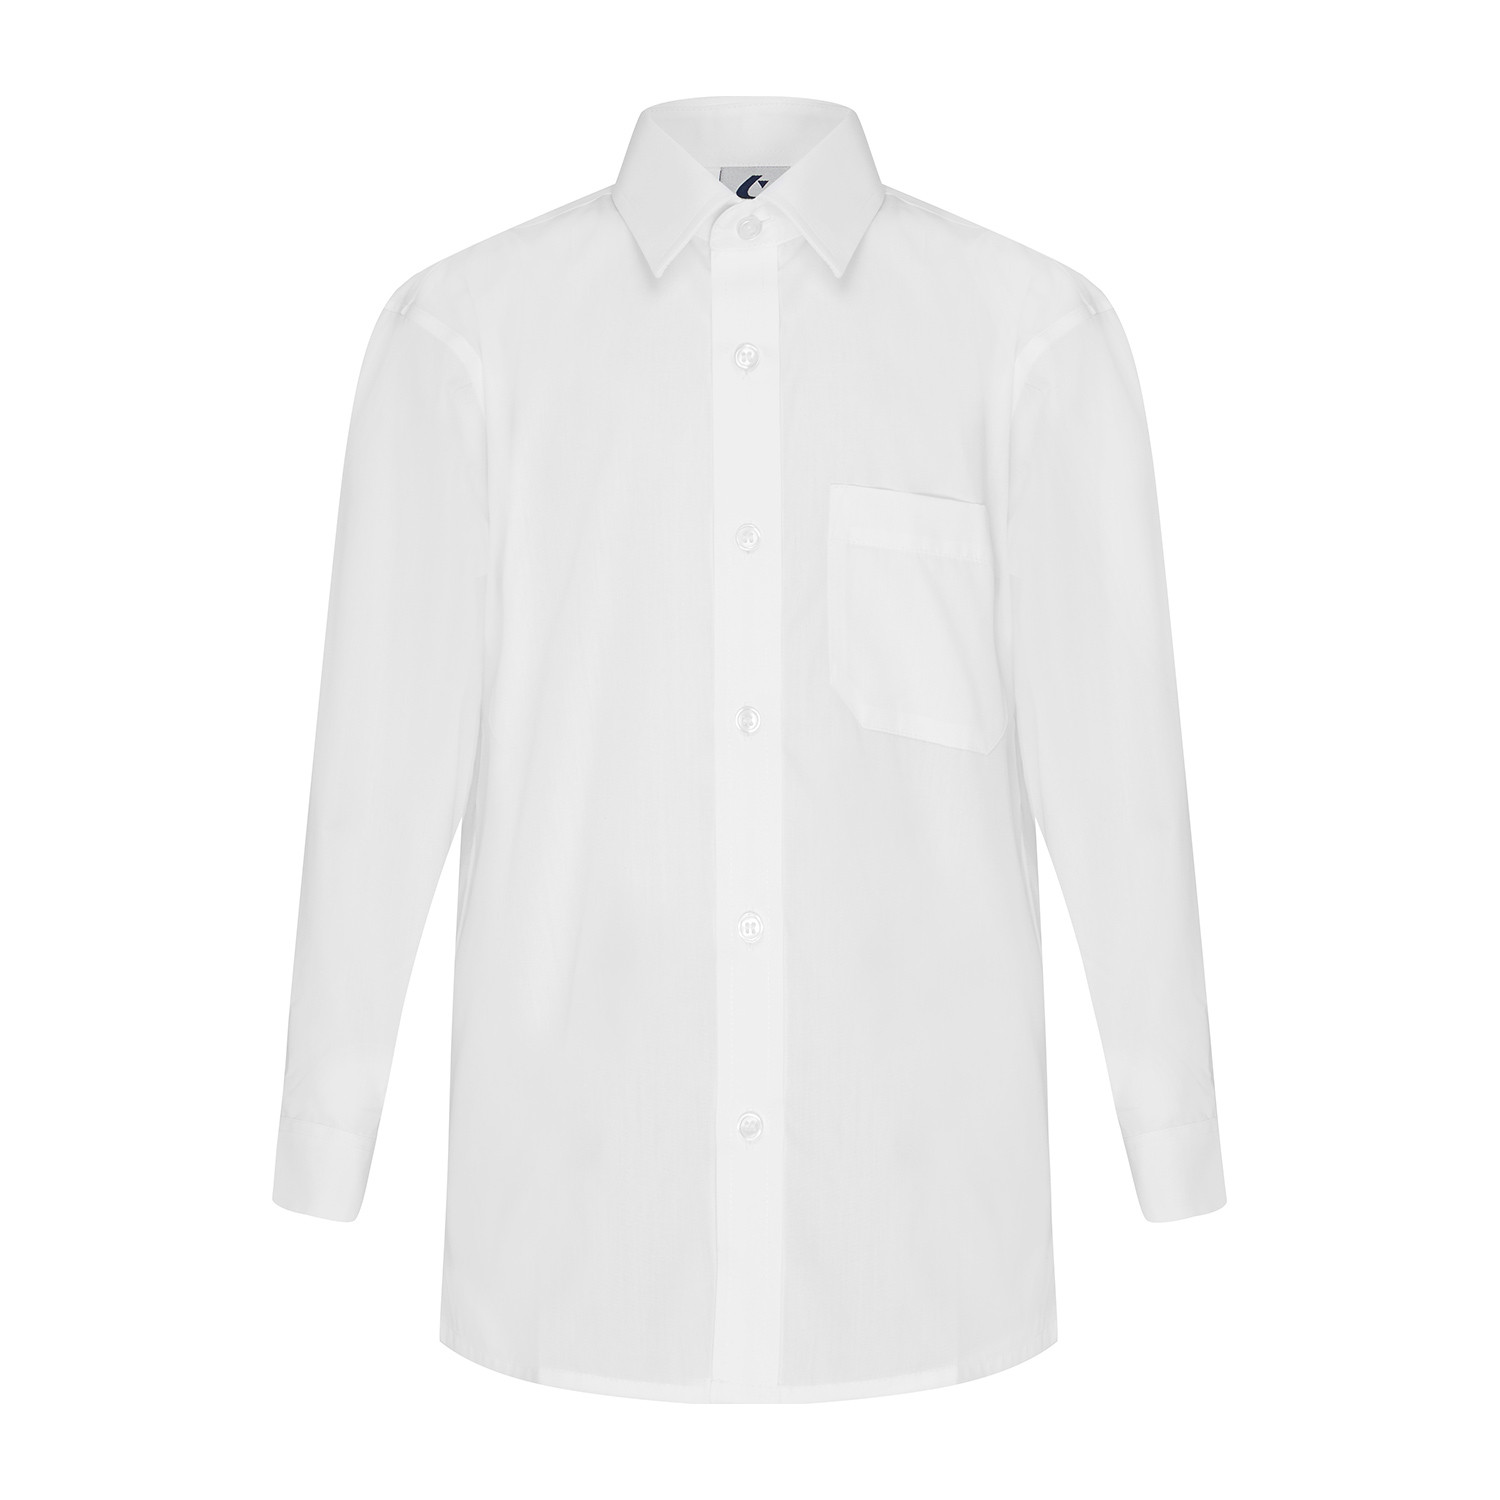 Long Sleeve Shirt with Button Up Collar